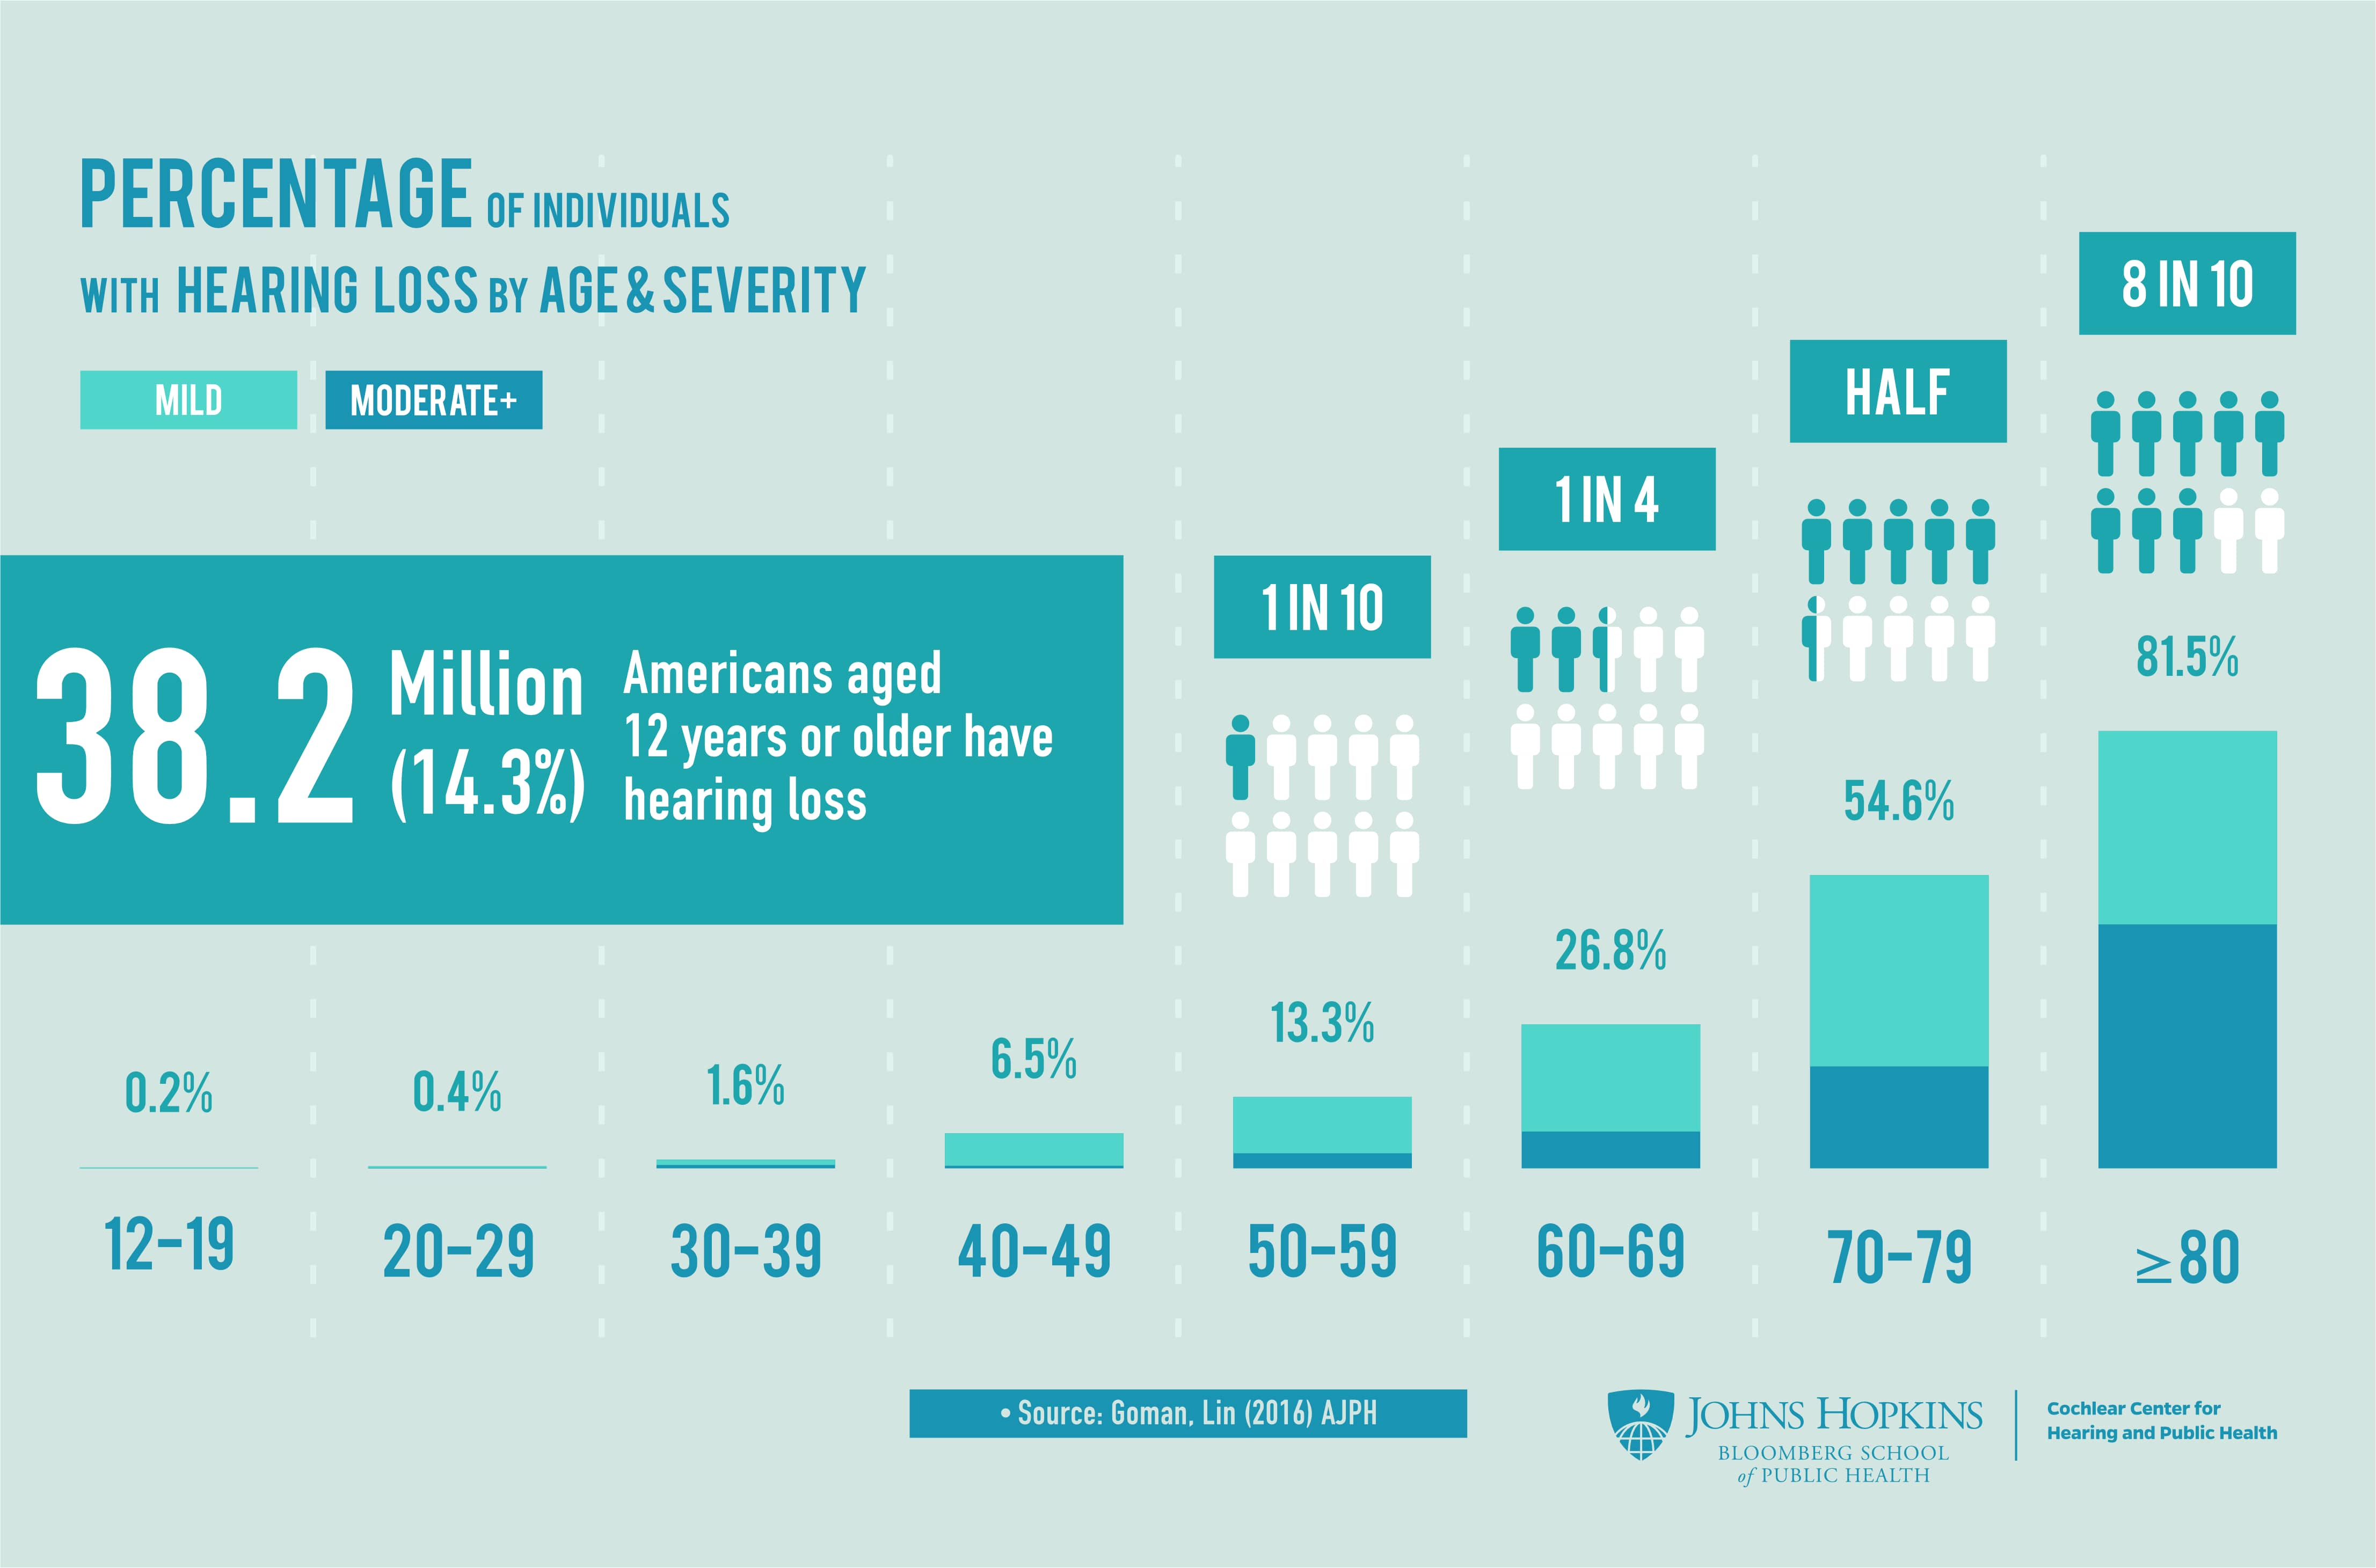 Percentage of individuals with hearing loss by age and severity